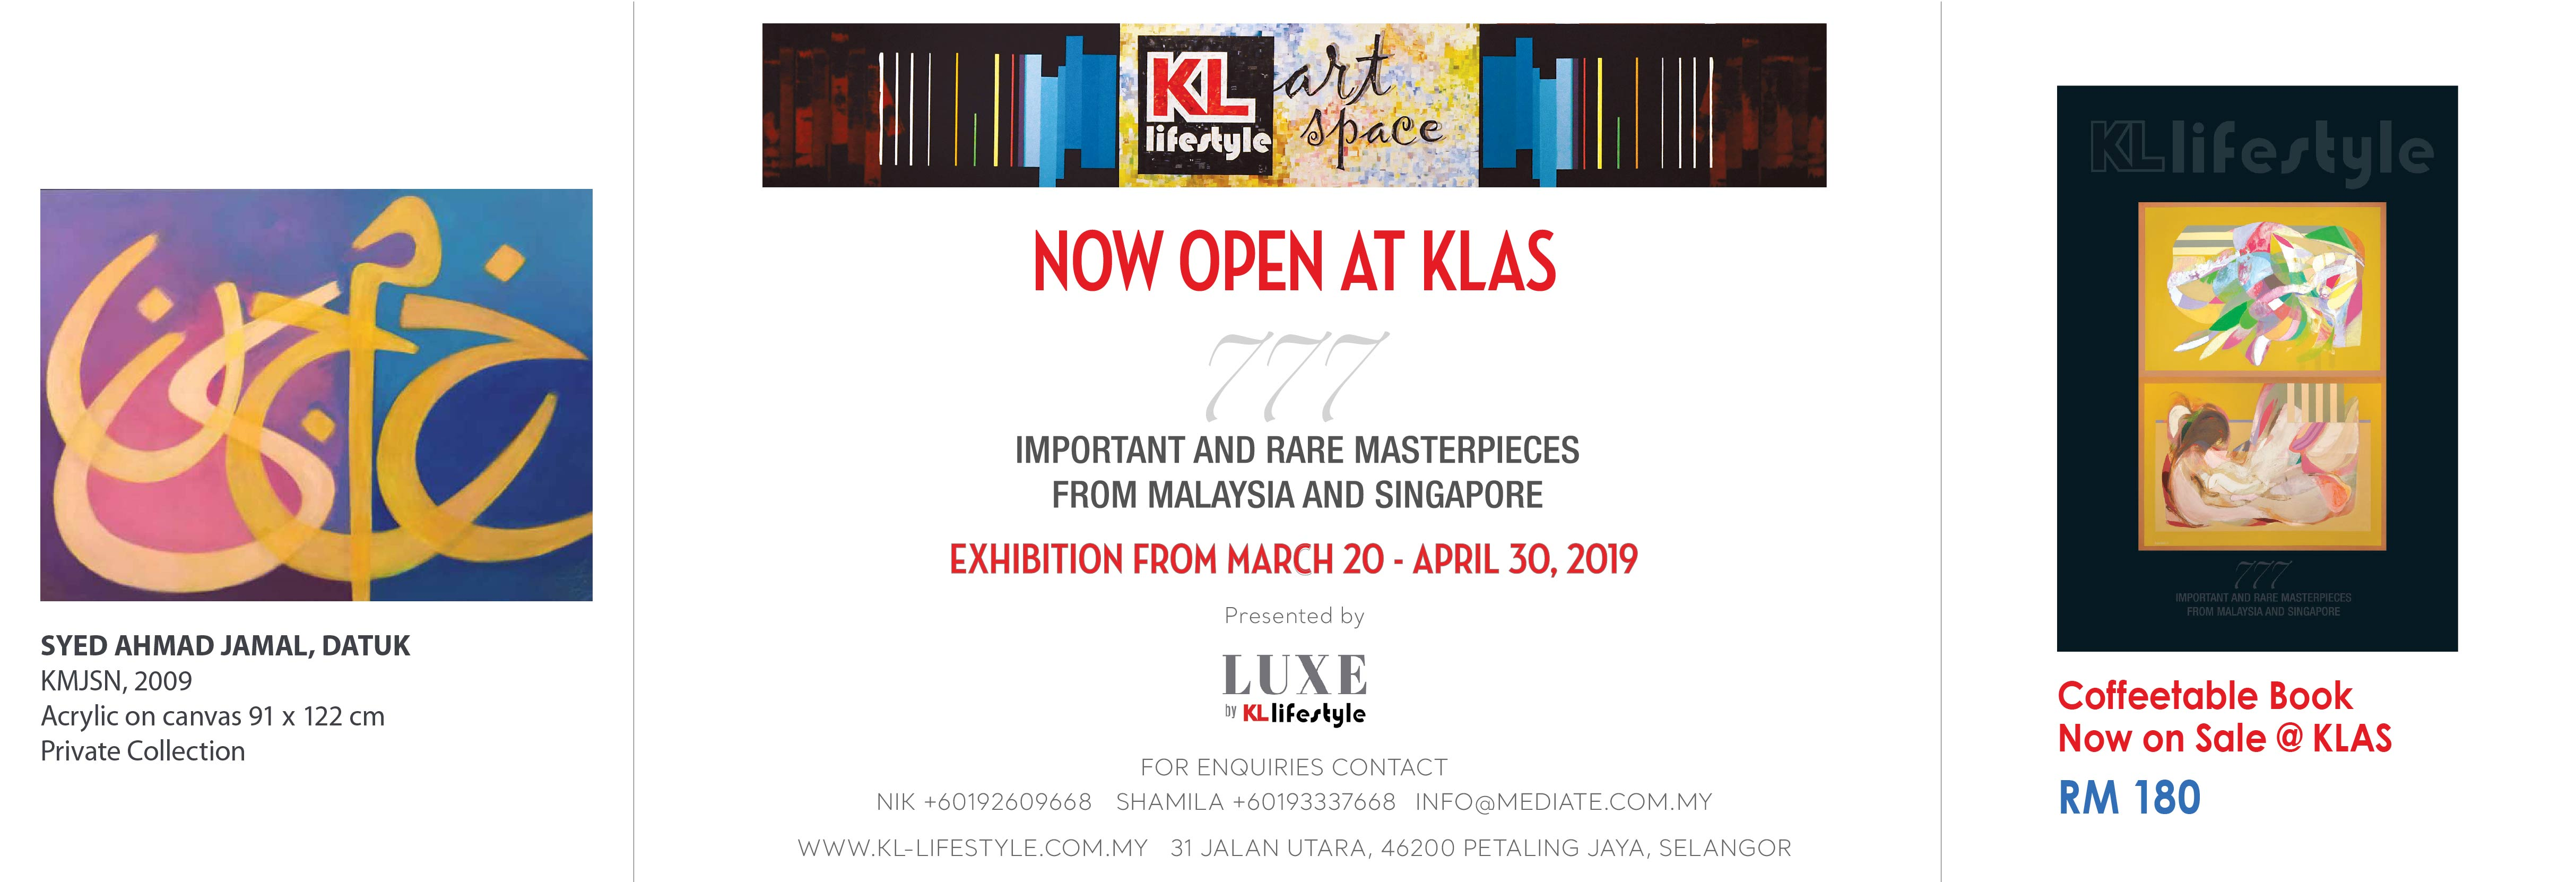 777 NOW OPEN AT KLAS COFFEE BOOK WEB BANNER-04